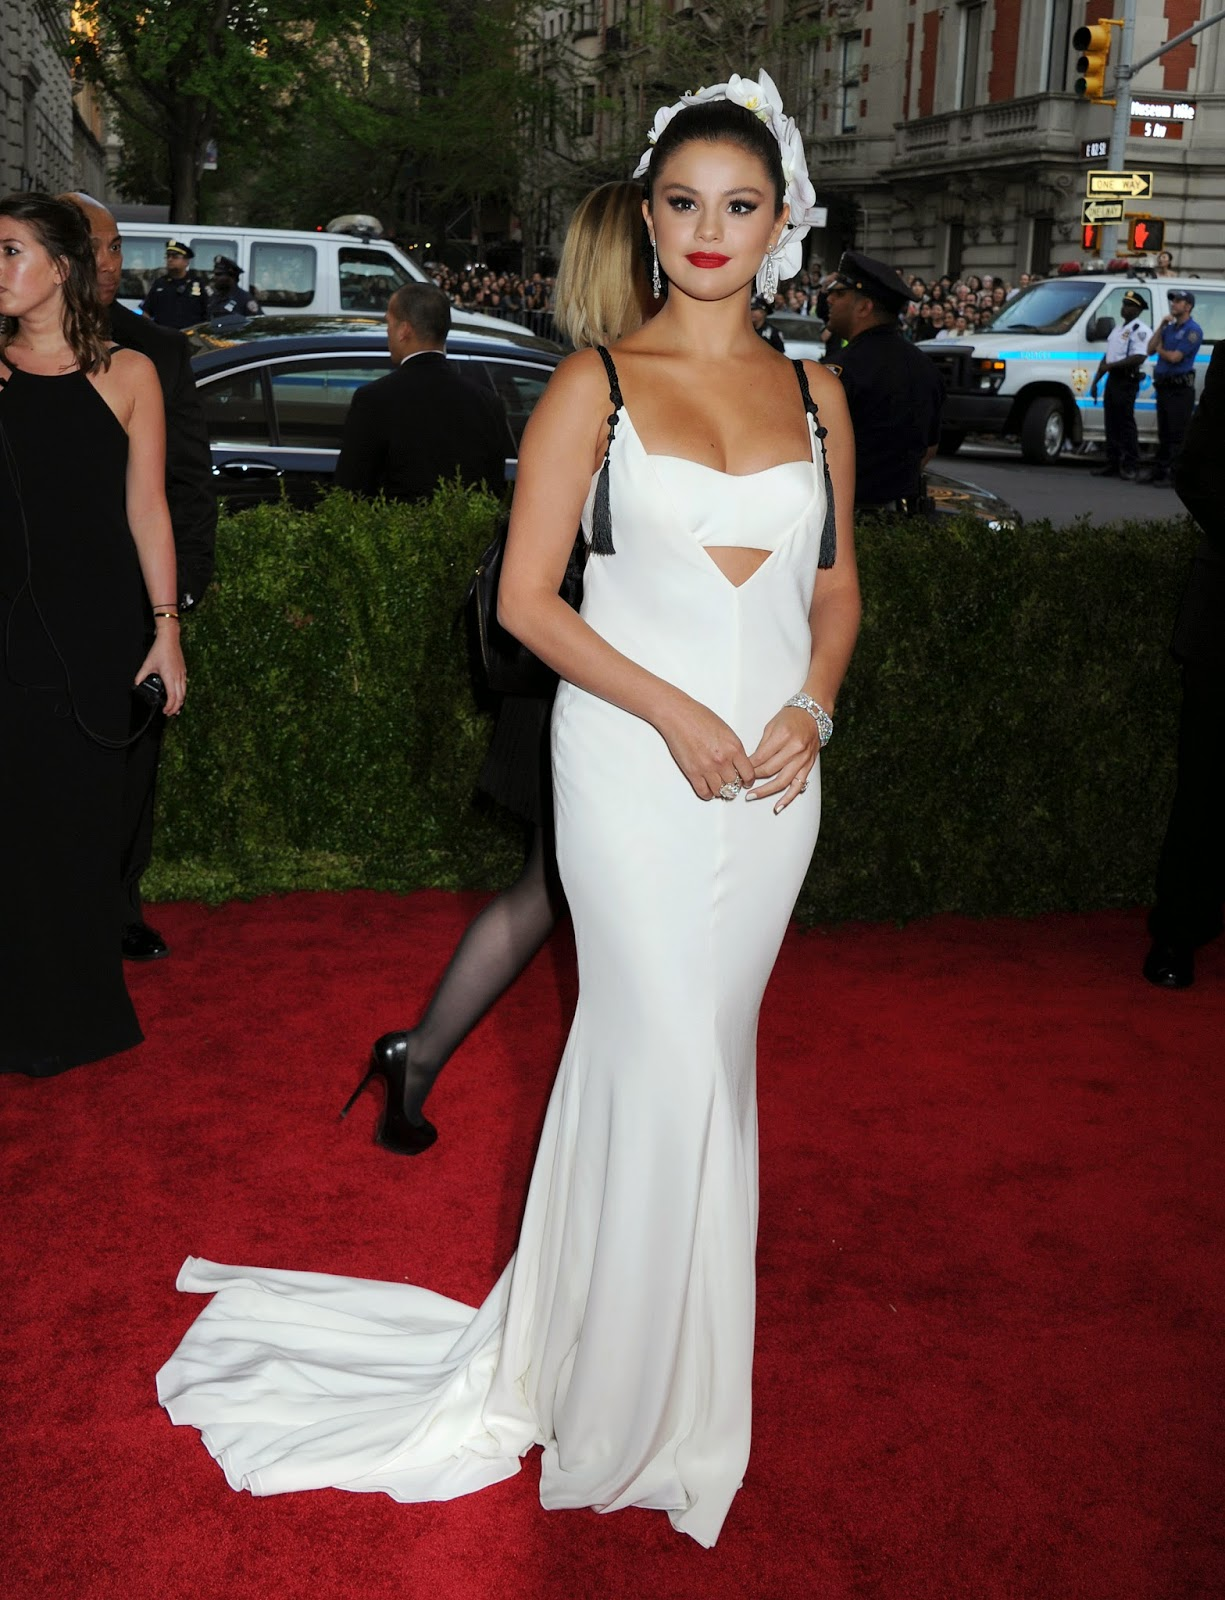 Selena Gomez is seductive in Vera Wang at the 2015 Met Gala in New York